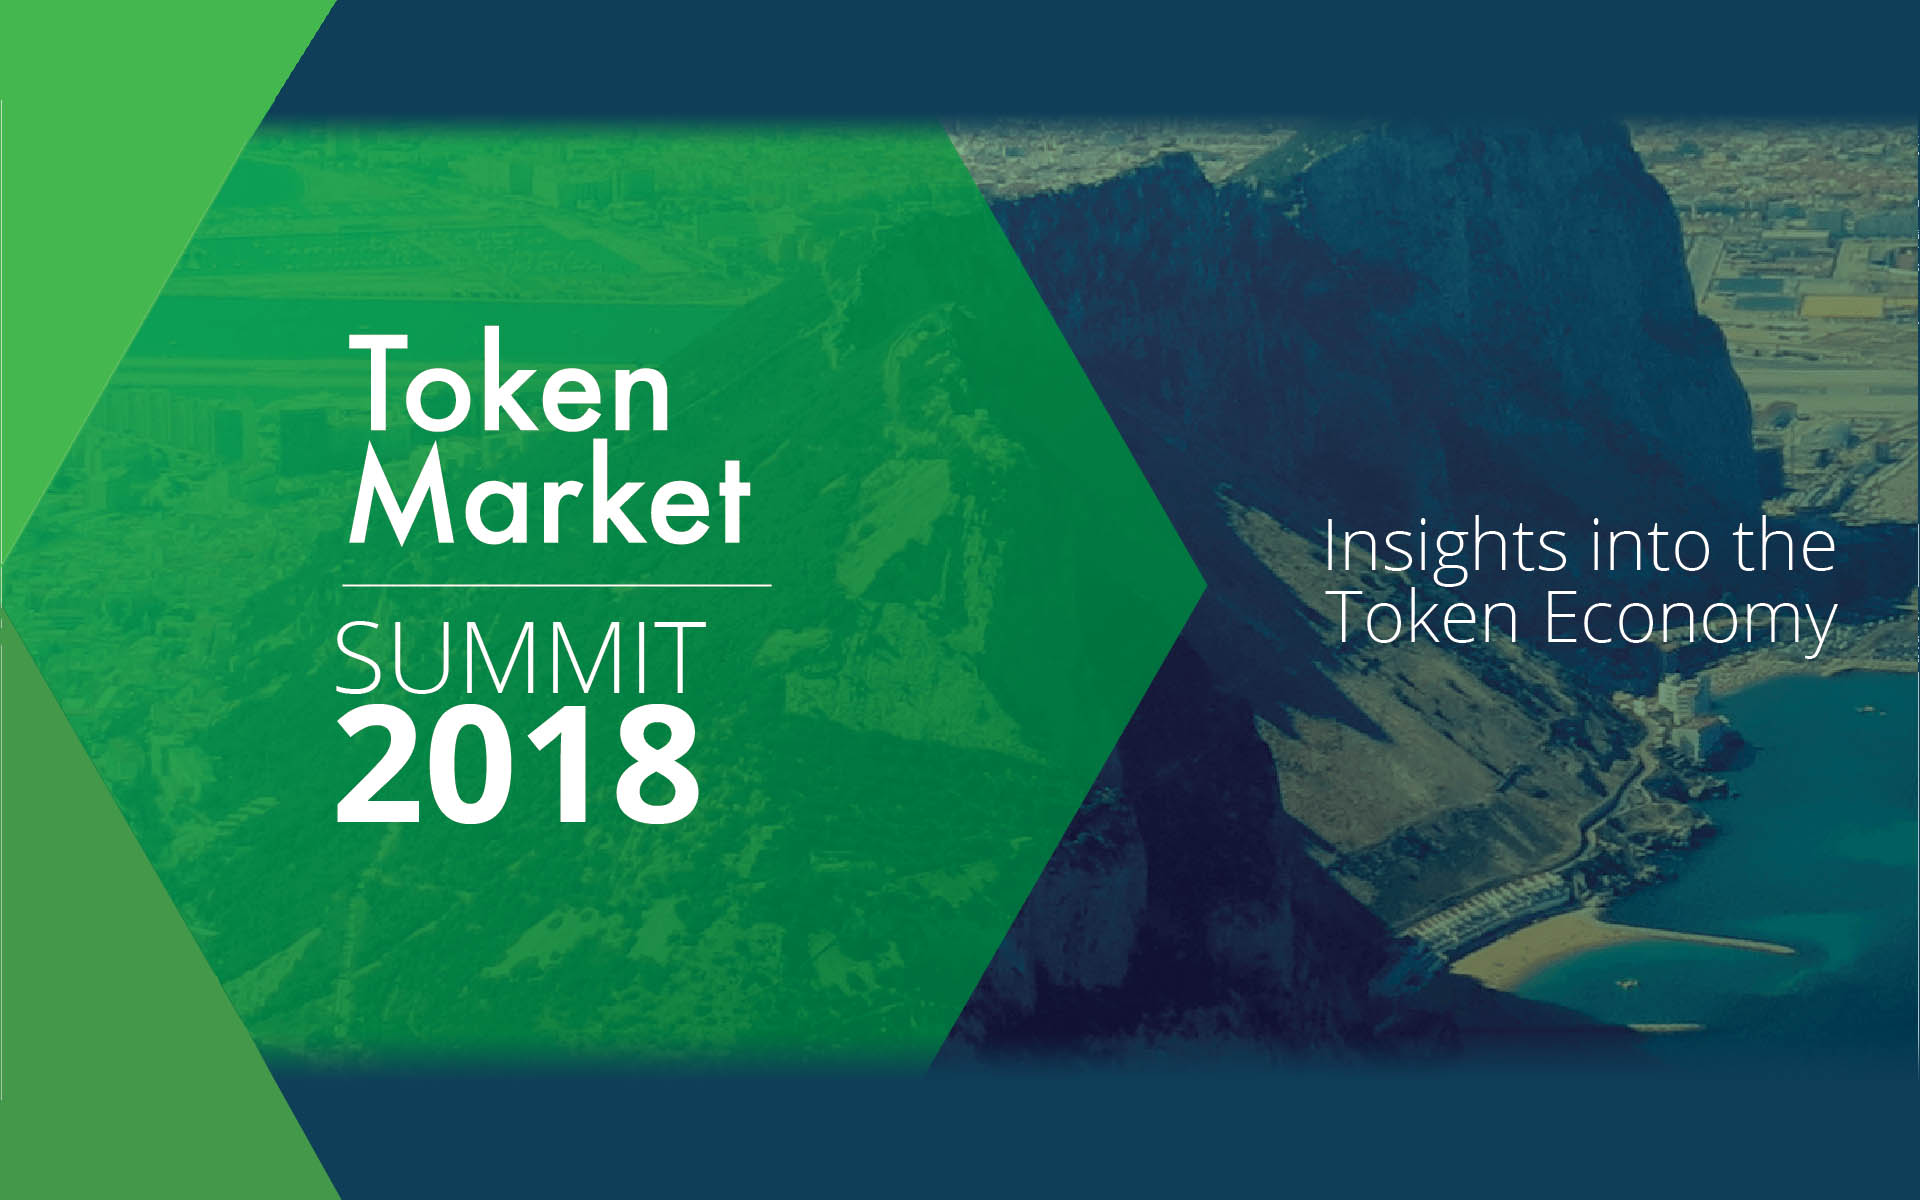 The Bitcoin Foundation's Llew Claasen and BnkToTheFuture's Simon Dixon to Join All Star Lineup For TokenMarket 2018